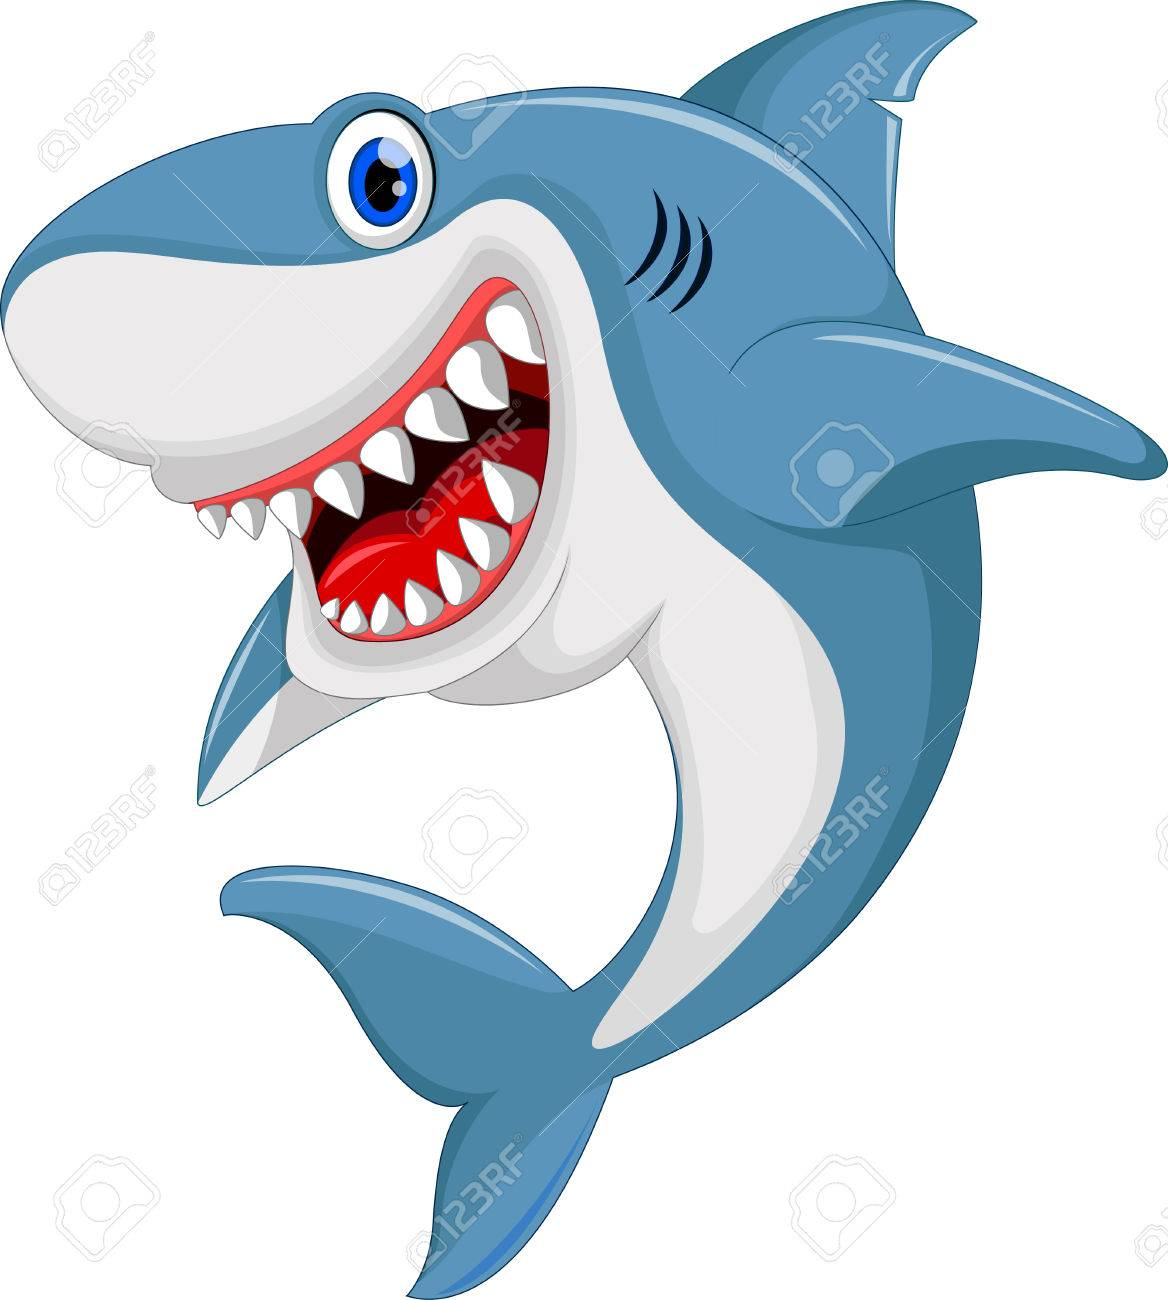 shark images cartoon  Angry Shark Cartoon Royalty Free Cliparts, Vectors, And Stock ...